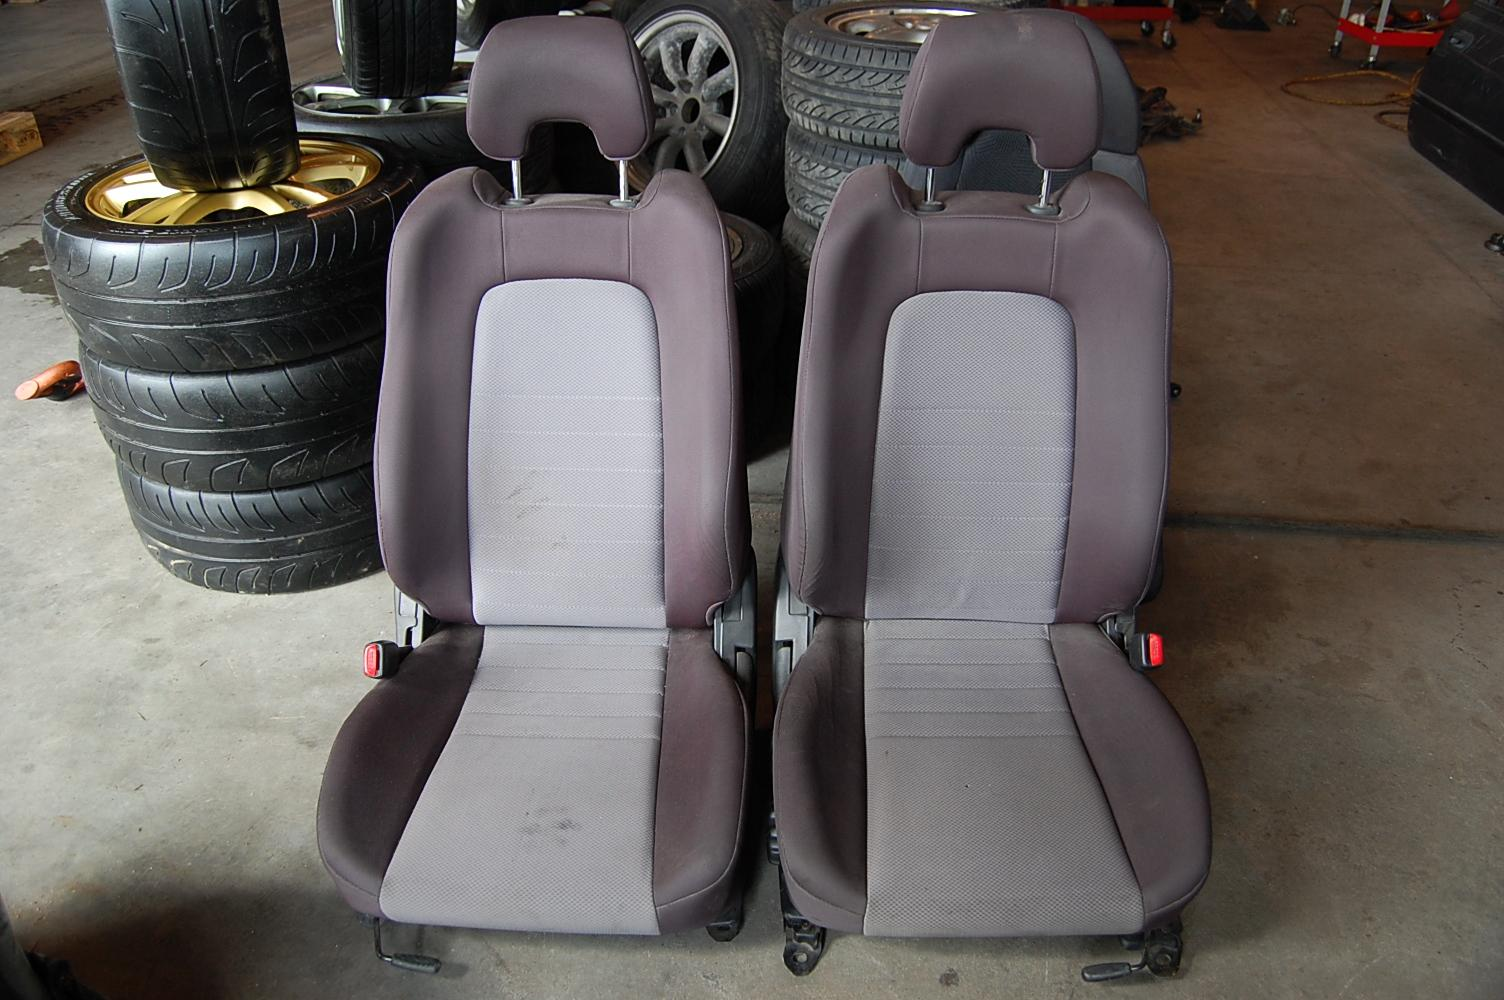 Nissan R34 Skyline Front & Rear Seats